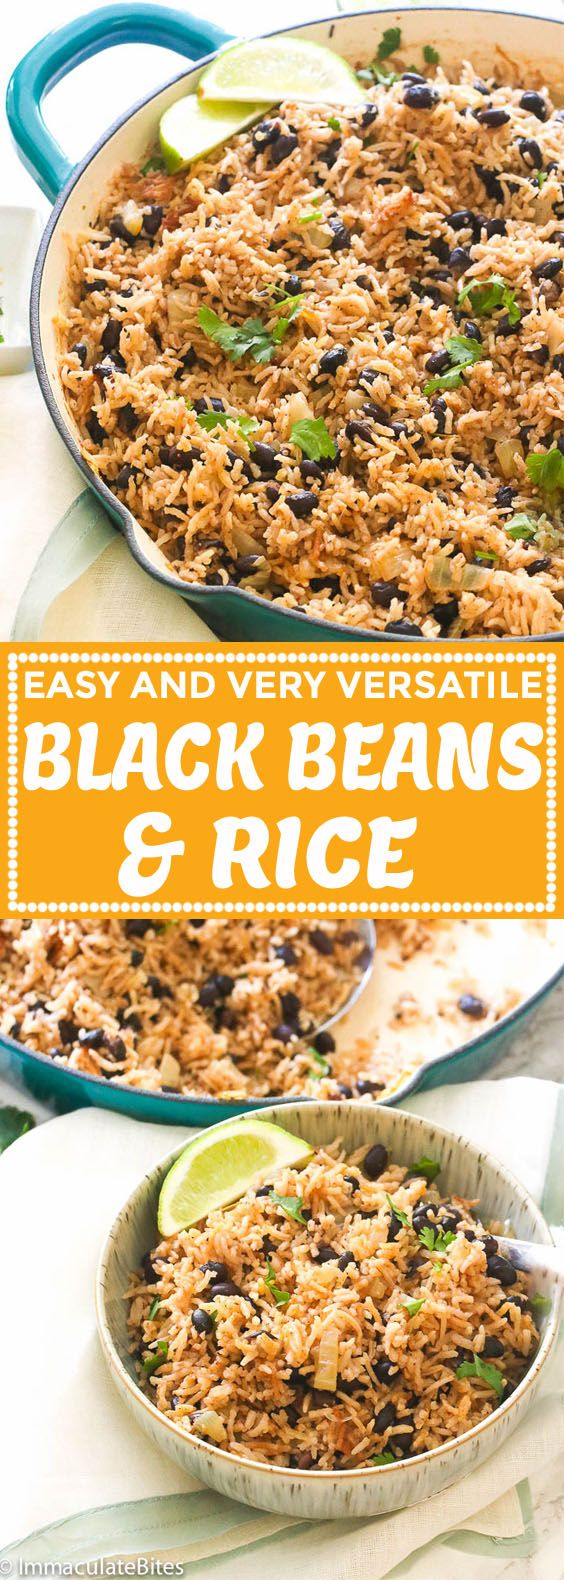 Black Beans and Rice - Immaculate Bites